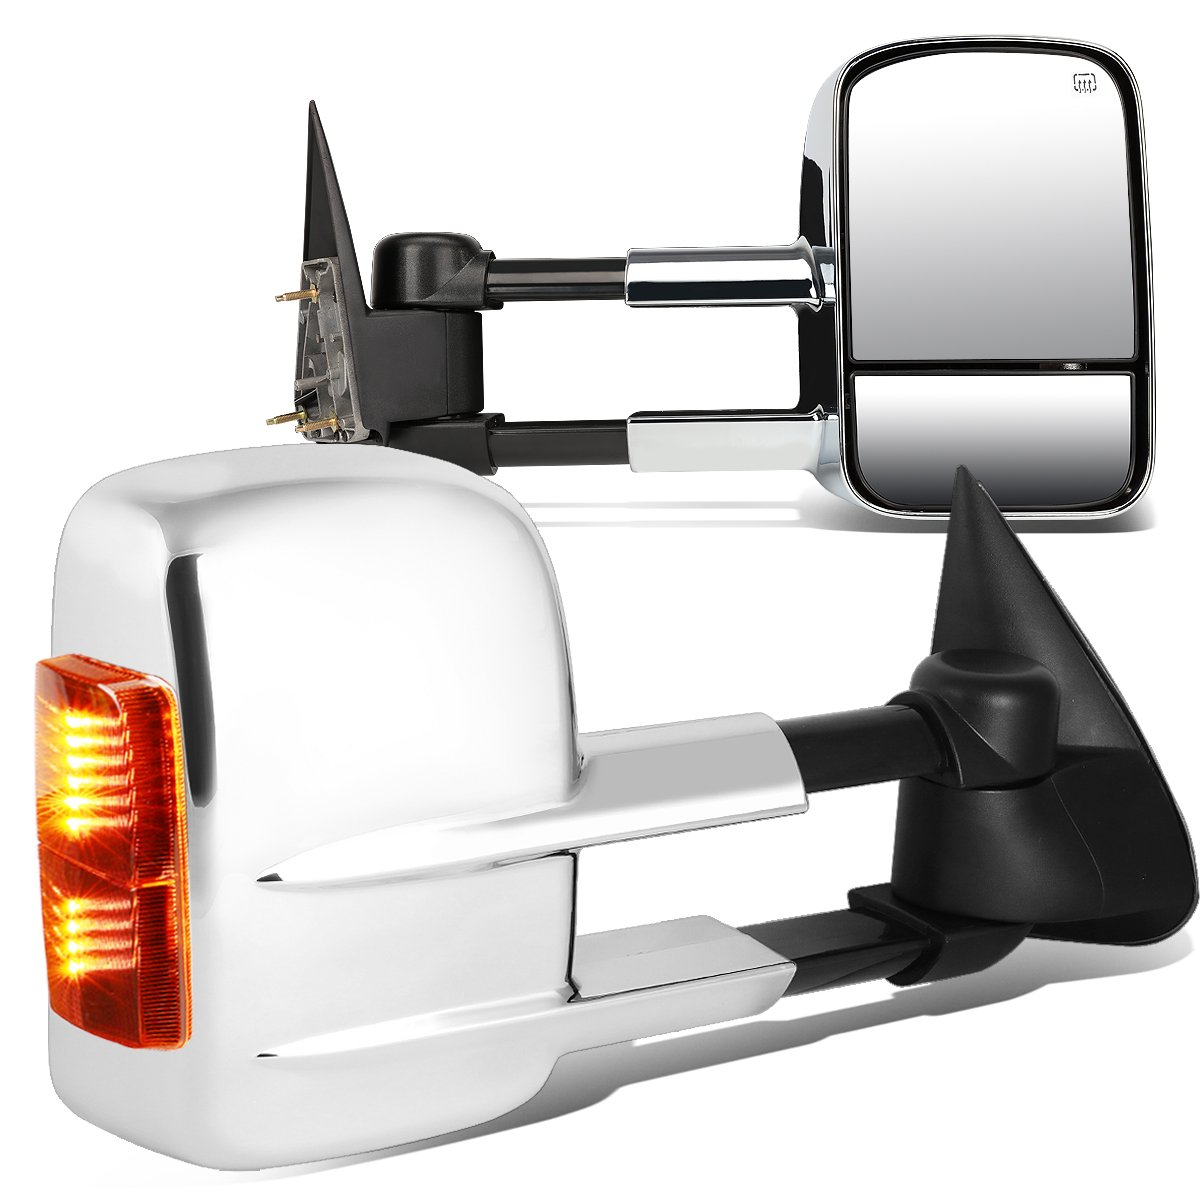 For Chevy Silverado/GMC Sierra GMT800 Pair of Powered + Heated Glass + Signal + Manual Extenable Side Towing Mirrors by Auto Dynasty